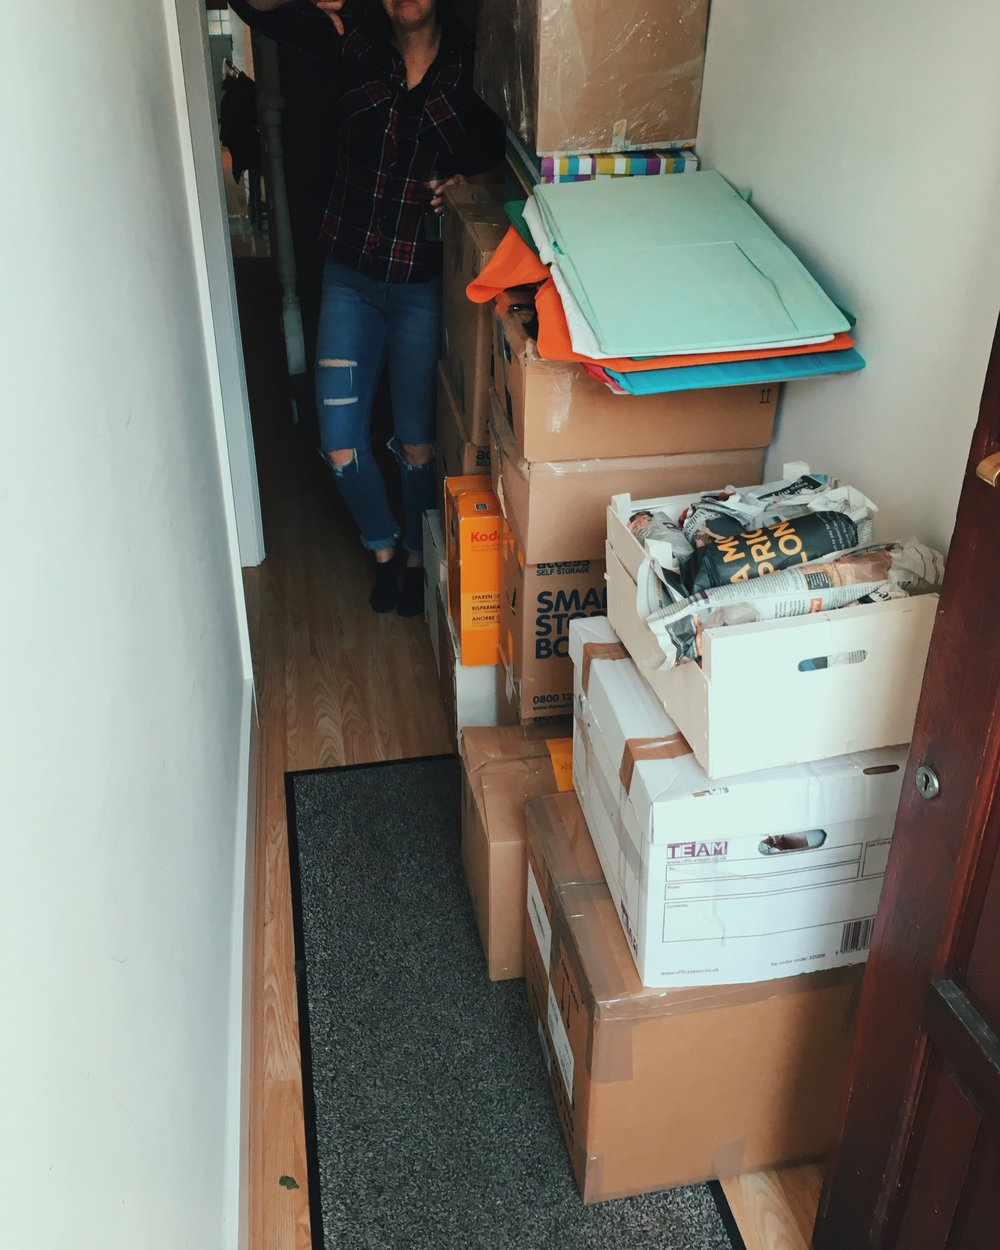 The moment of realisation about how many boxes we really have to store - and they kept coming!